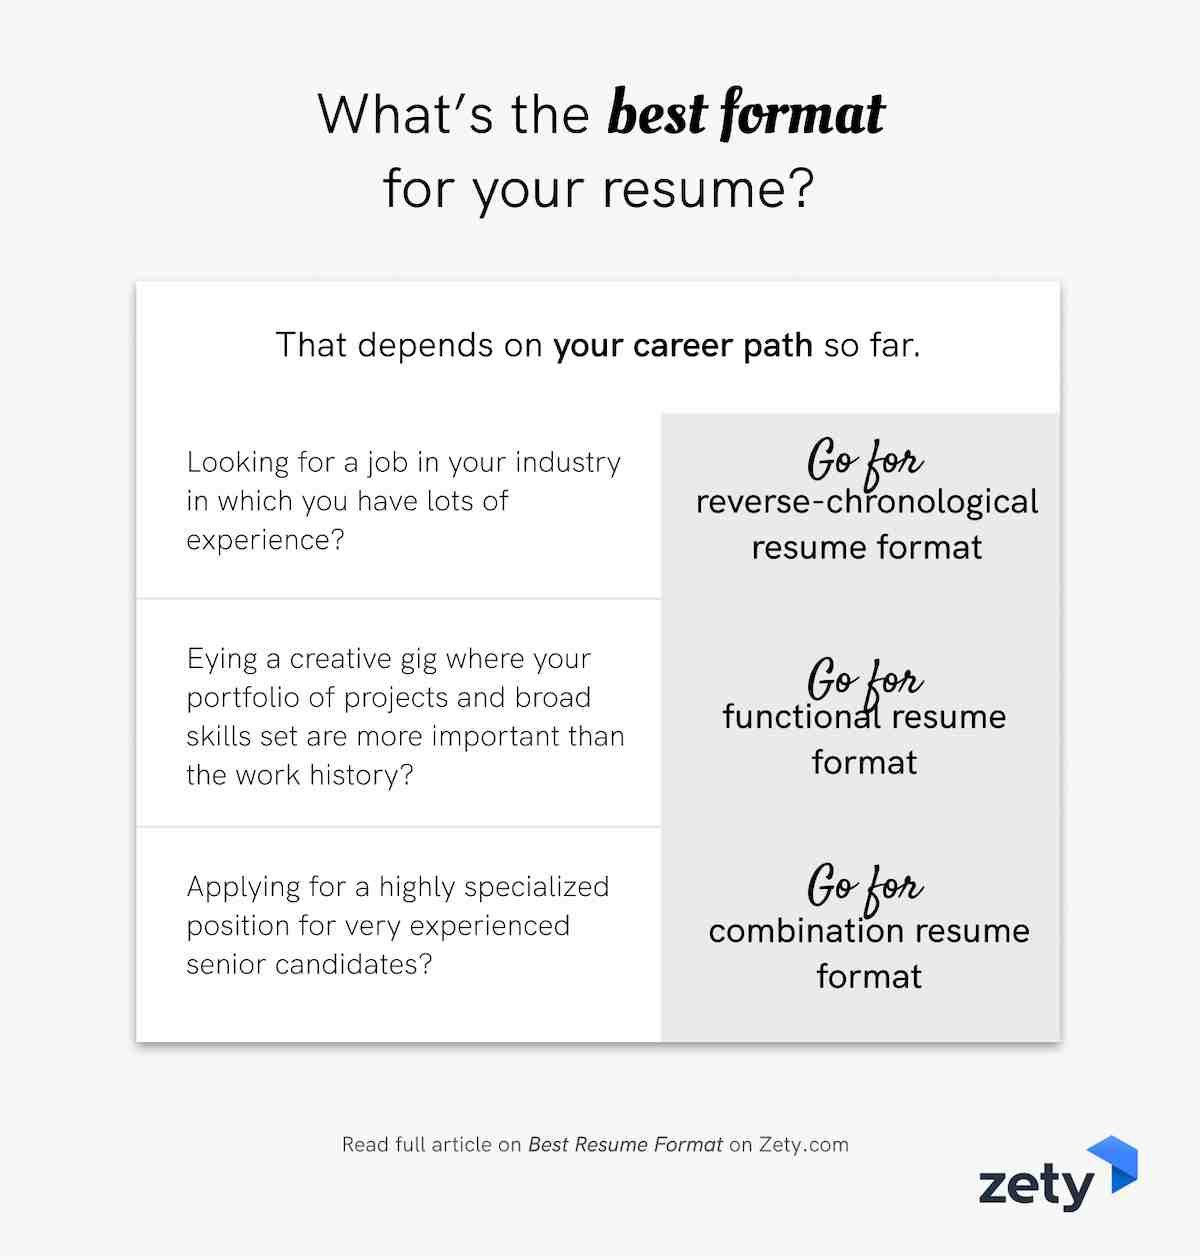 What's the best format for your resume